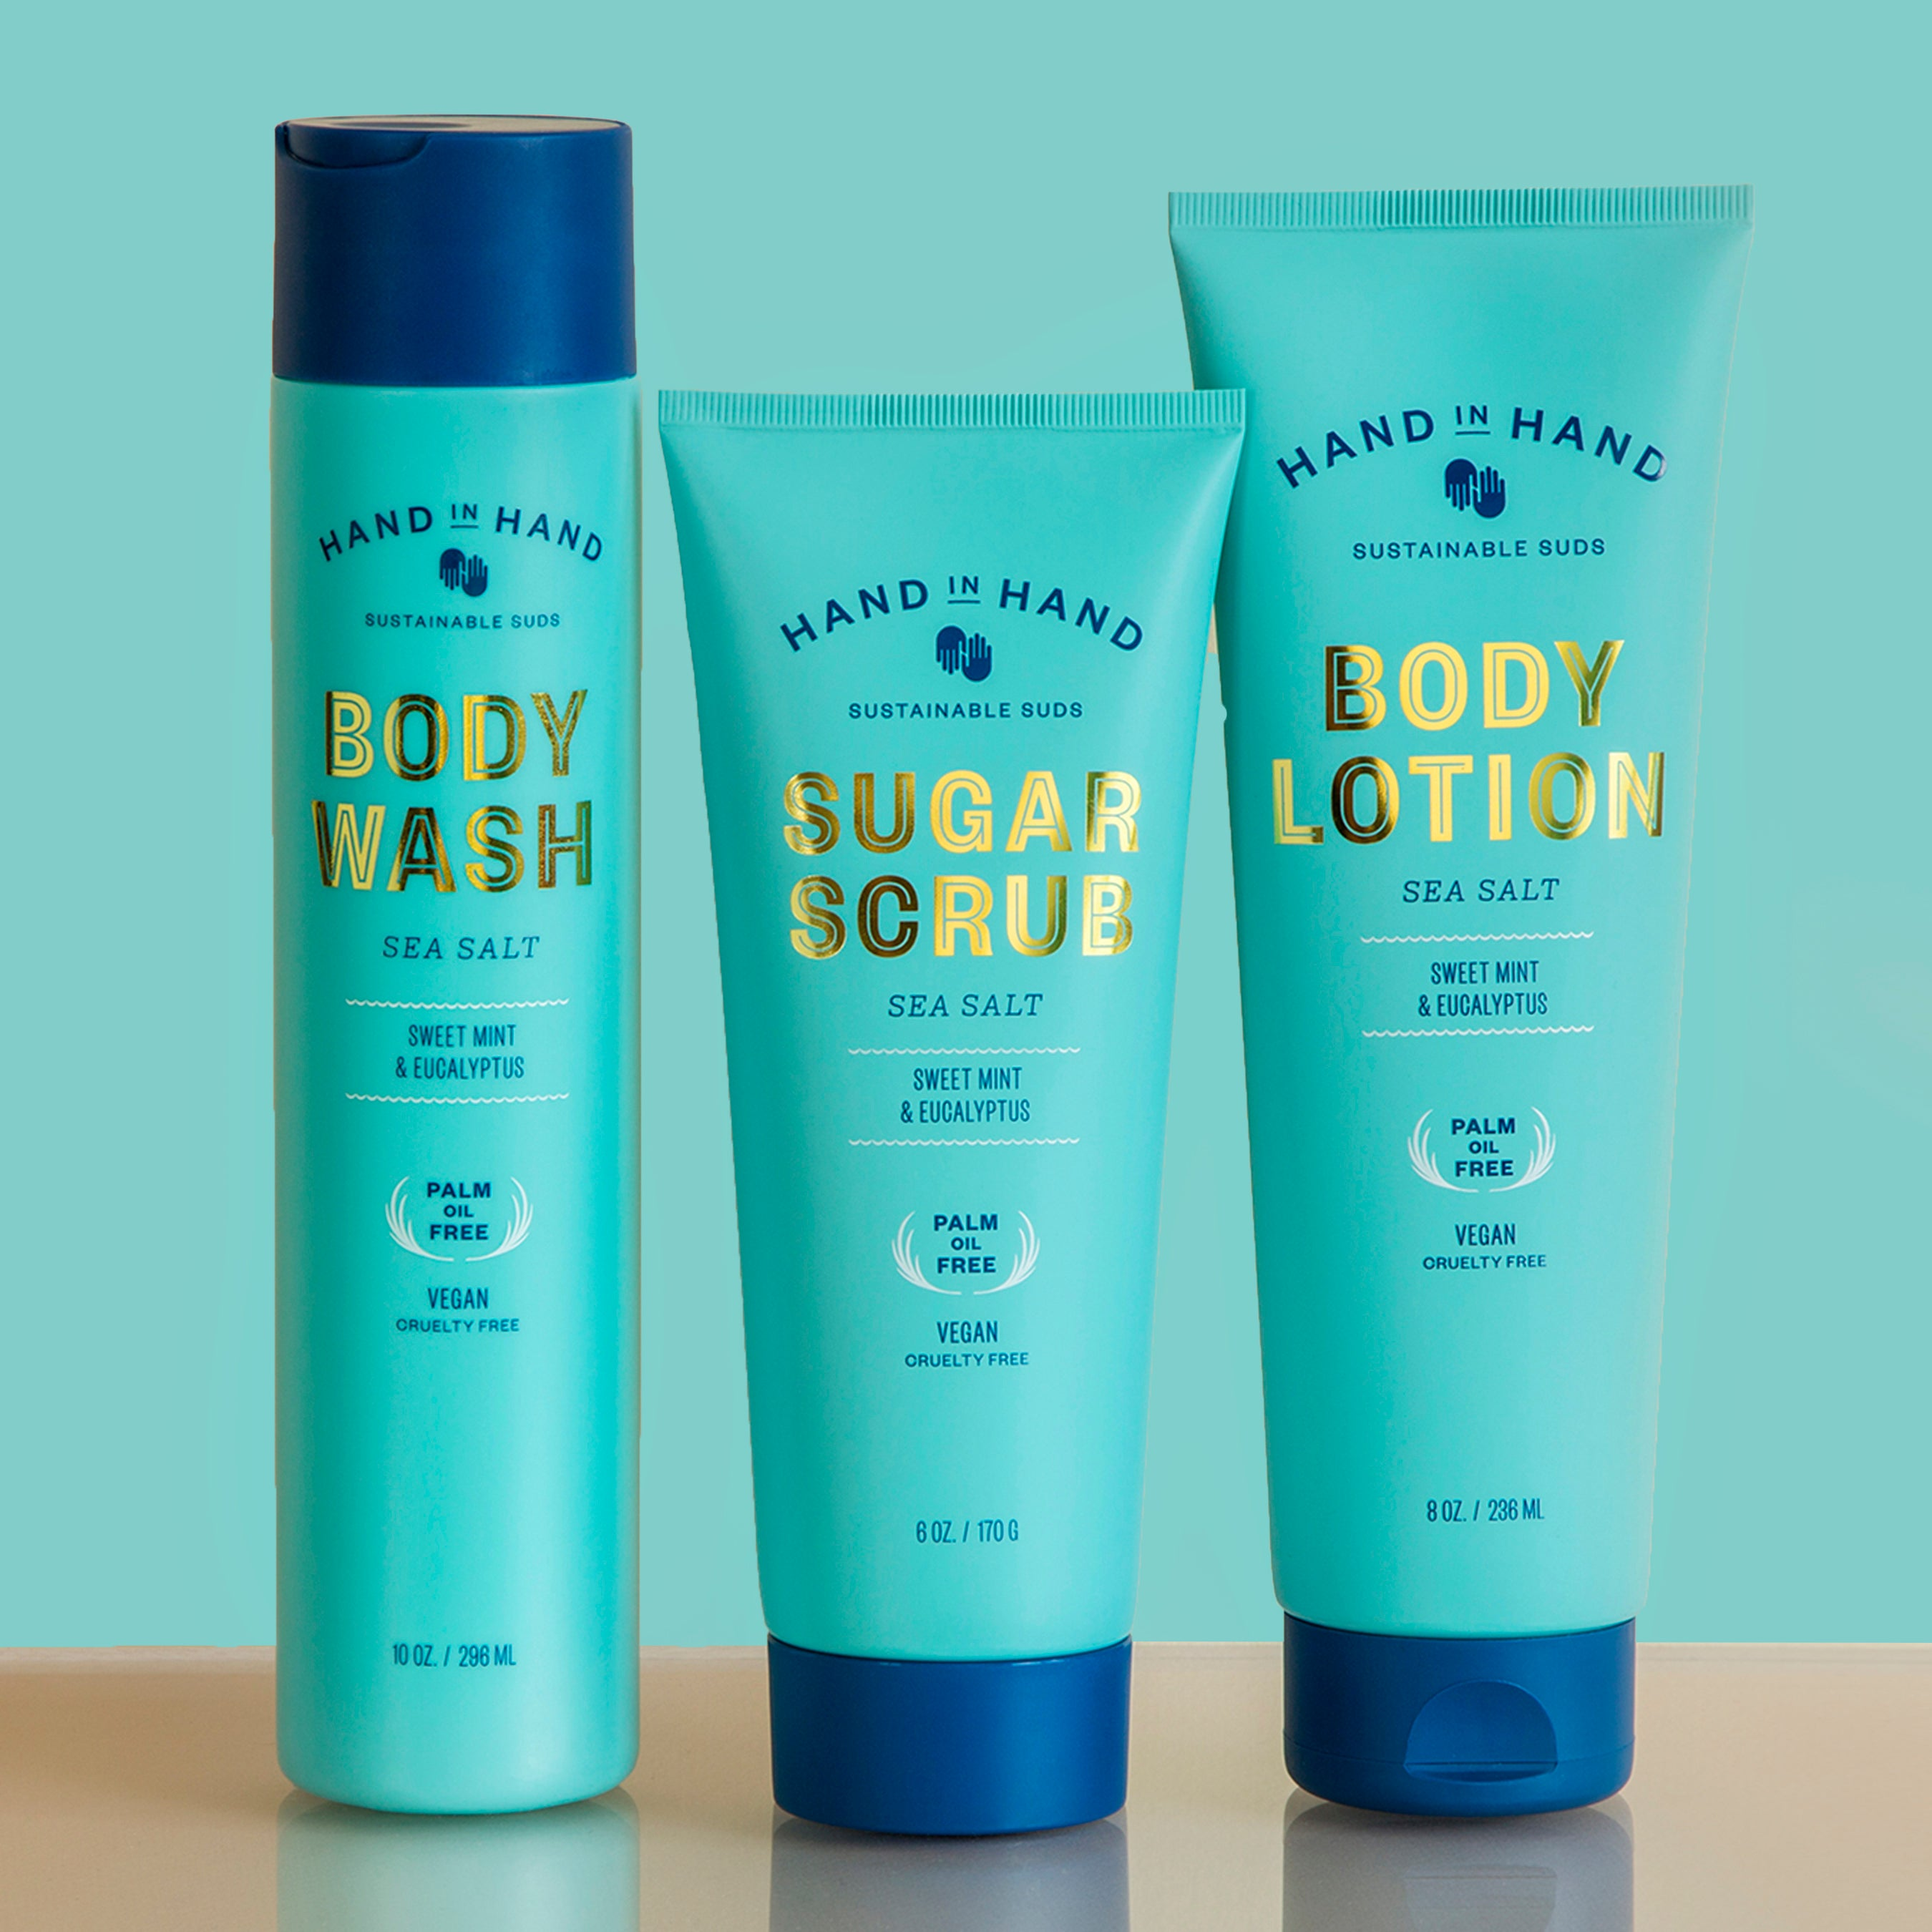 SEA SALT MODERN ULTIMATE SKIN ESSENTIALS SET